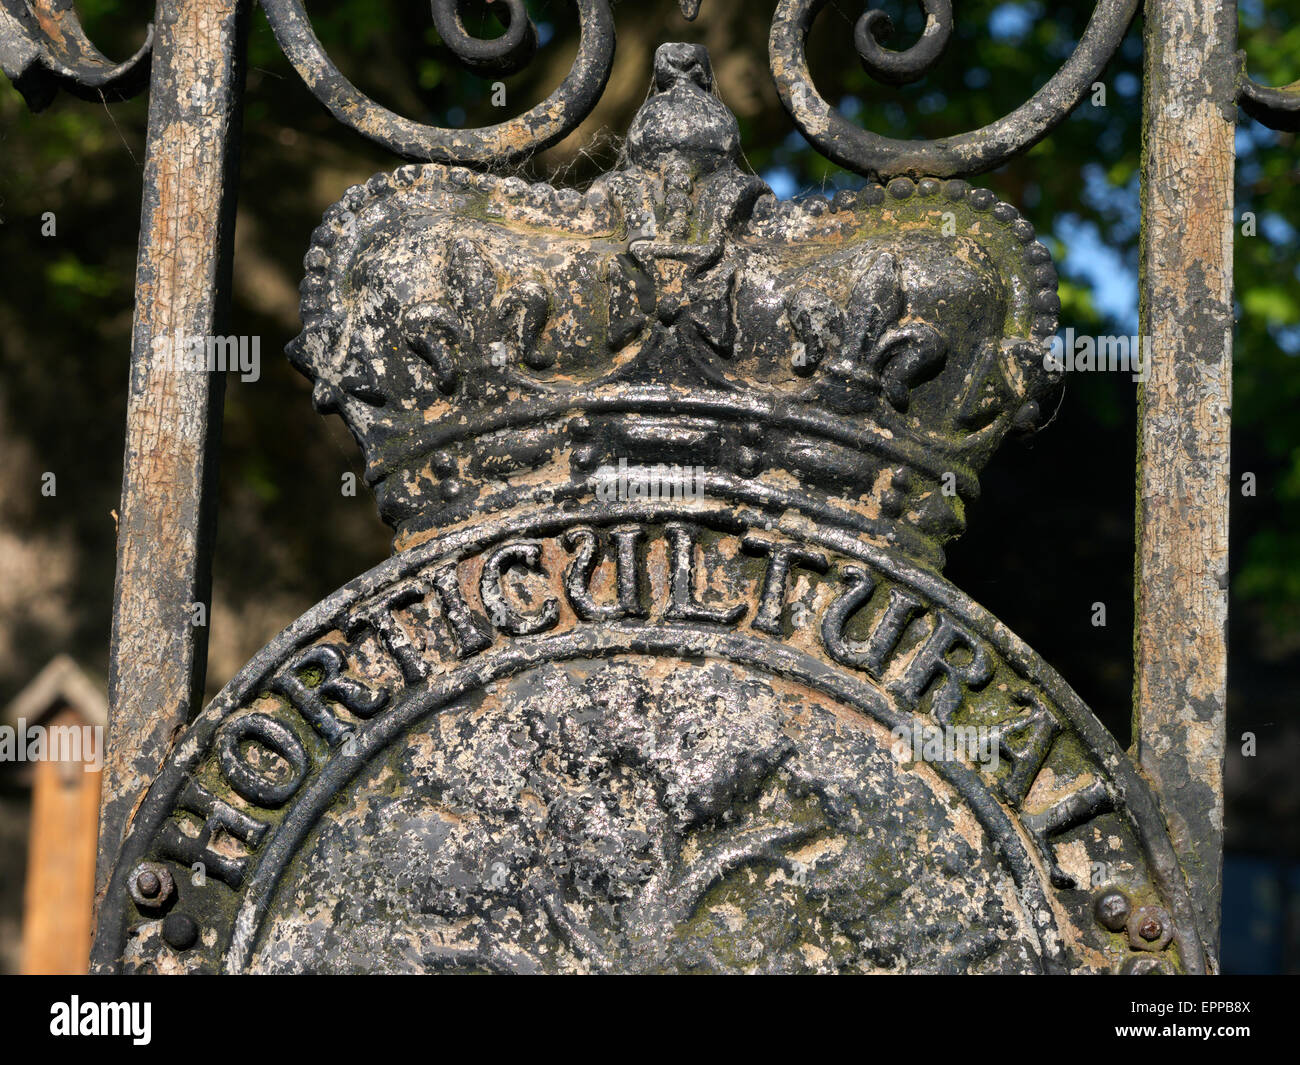 Close-up on weathered Royal Horticultural Society (RHS) metal plaque emblem on entrance gates with garden shed behind Stock Photo